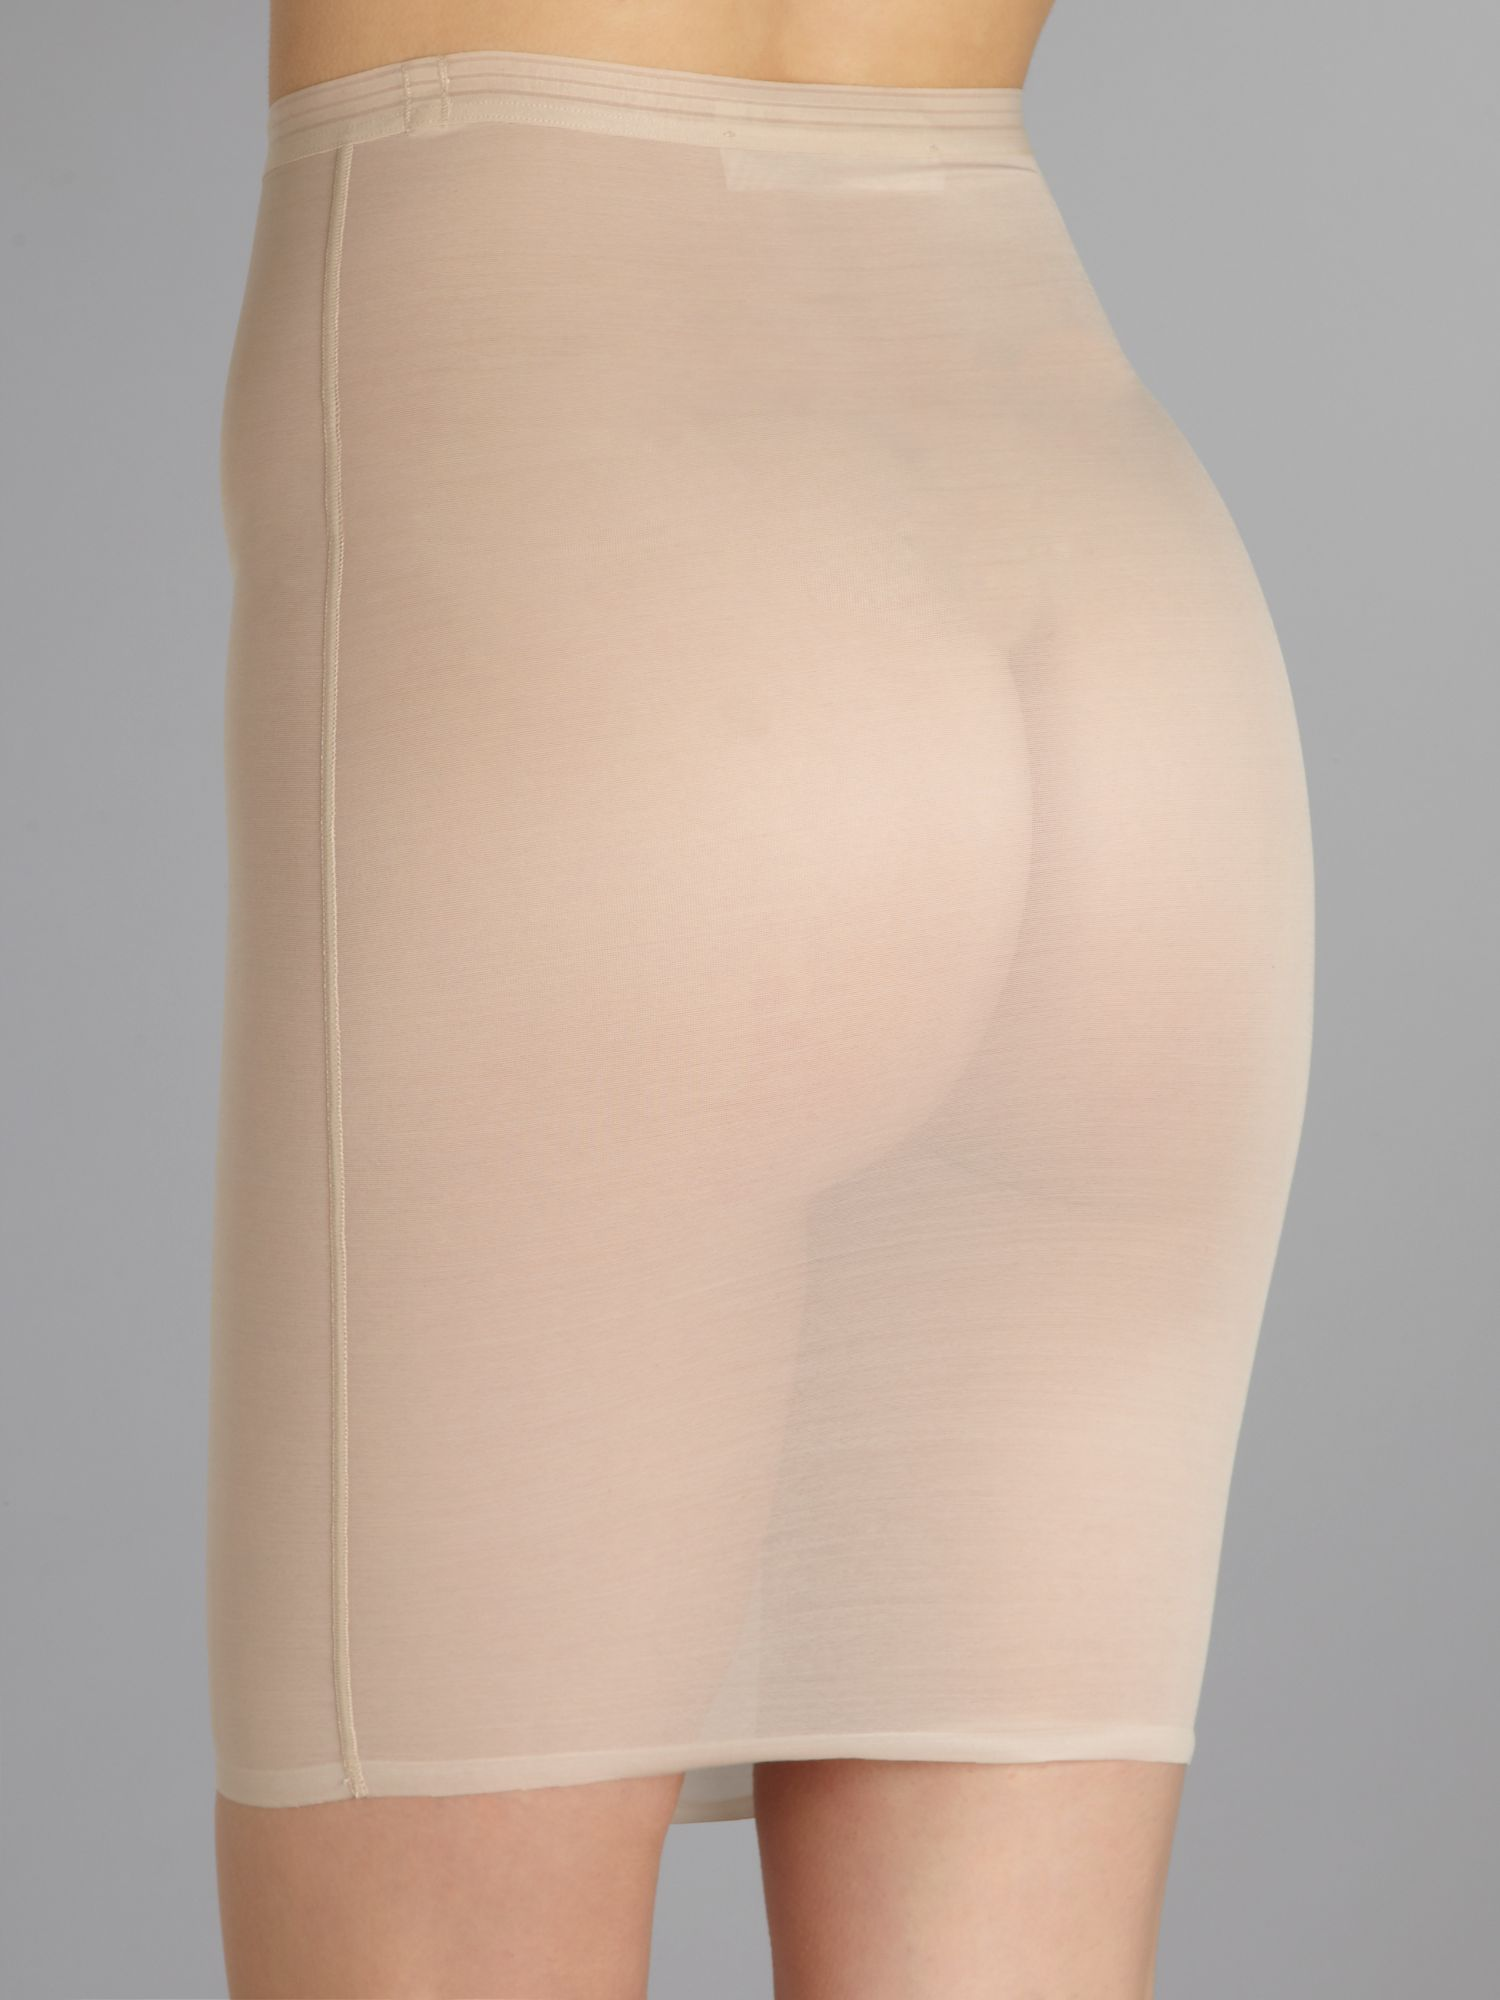 Triumph Light Sensation High Waist Skirt in Natural | Lyst